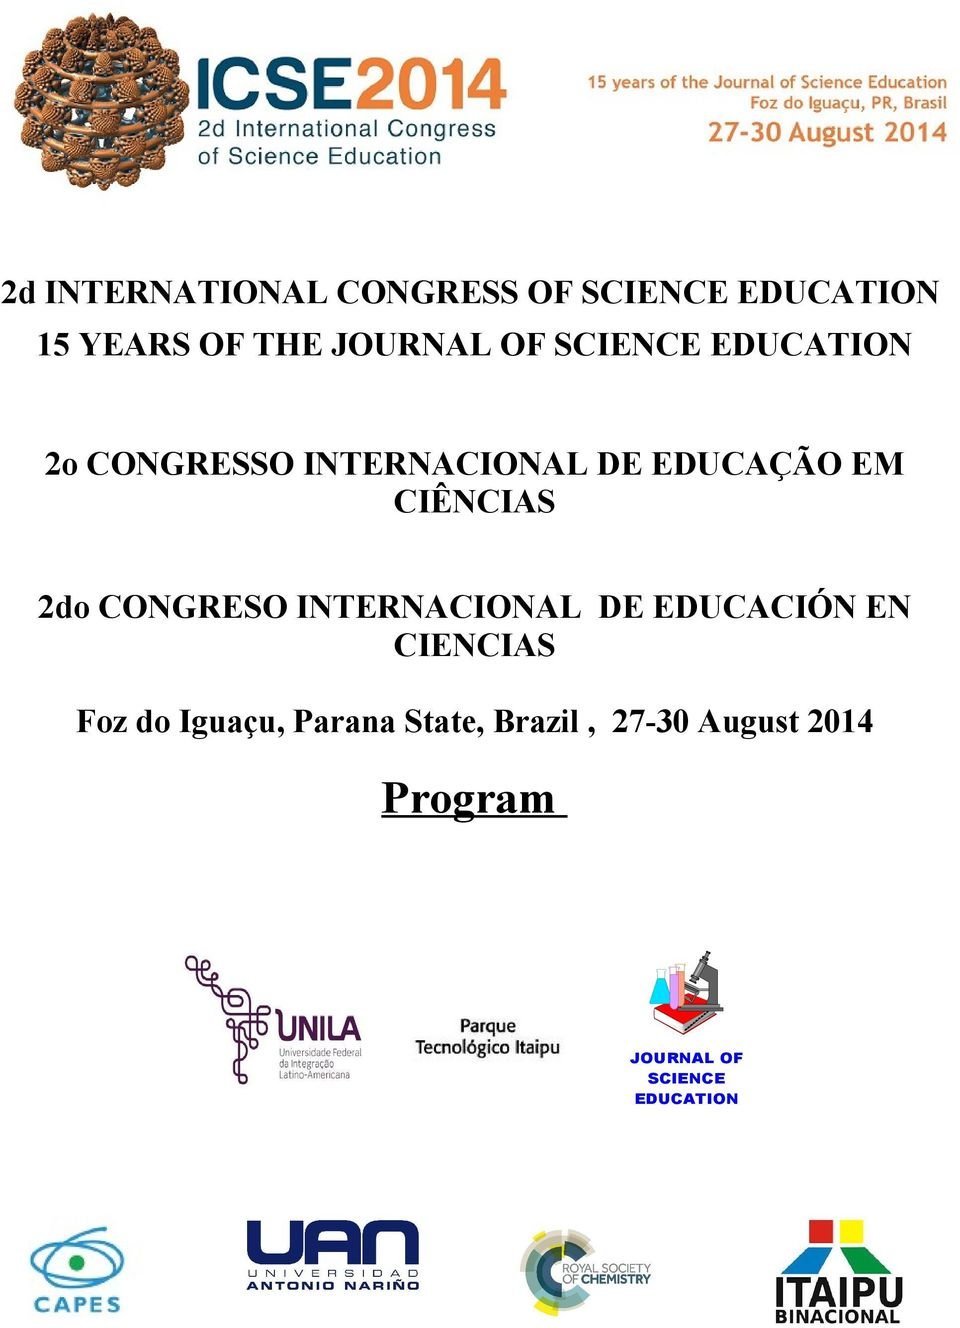 2do CONGRESO INTERNACIONAL DE EDUCACIÓN EN CIENCIAS Foz do Iguaçu,